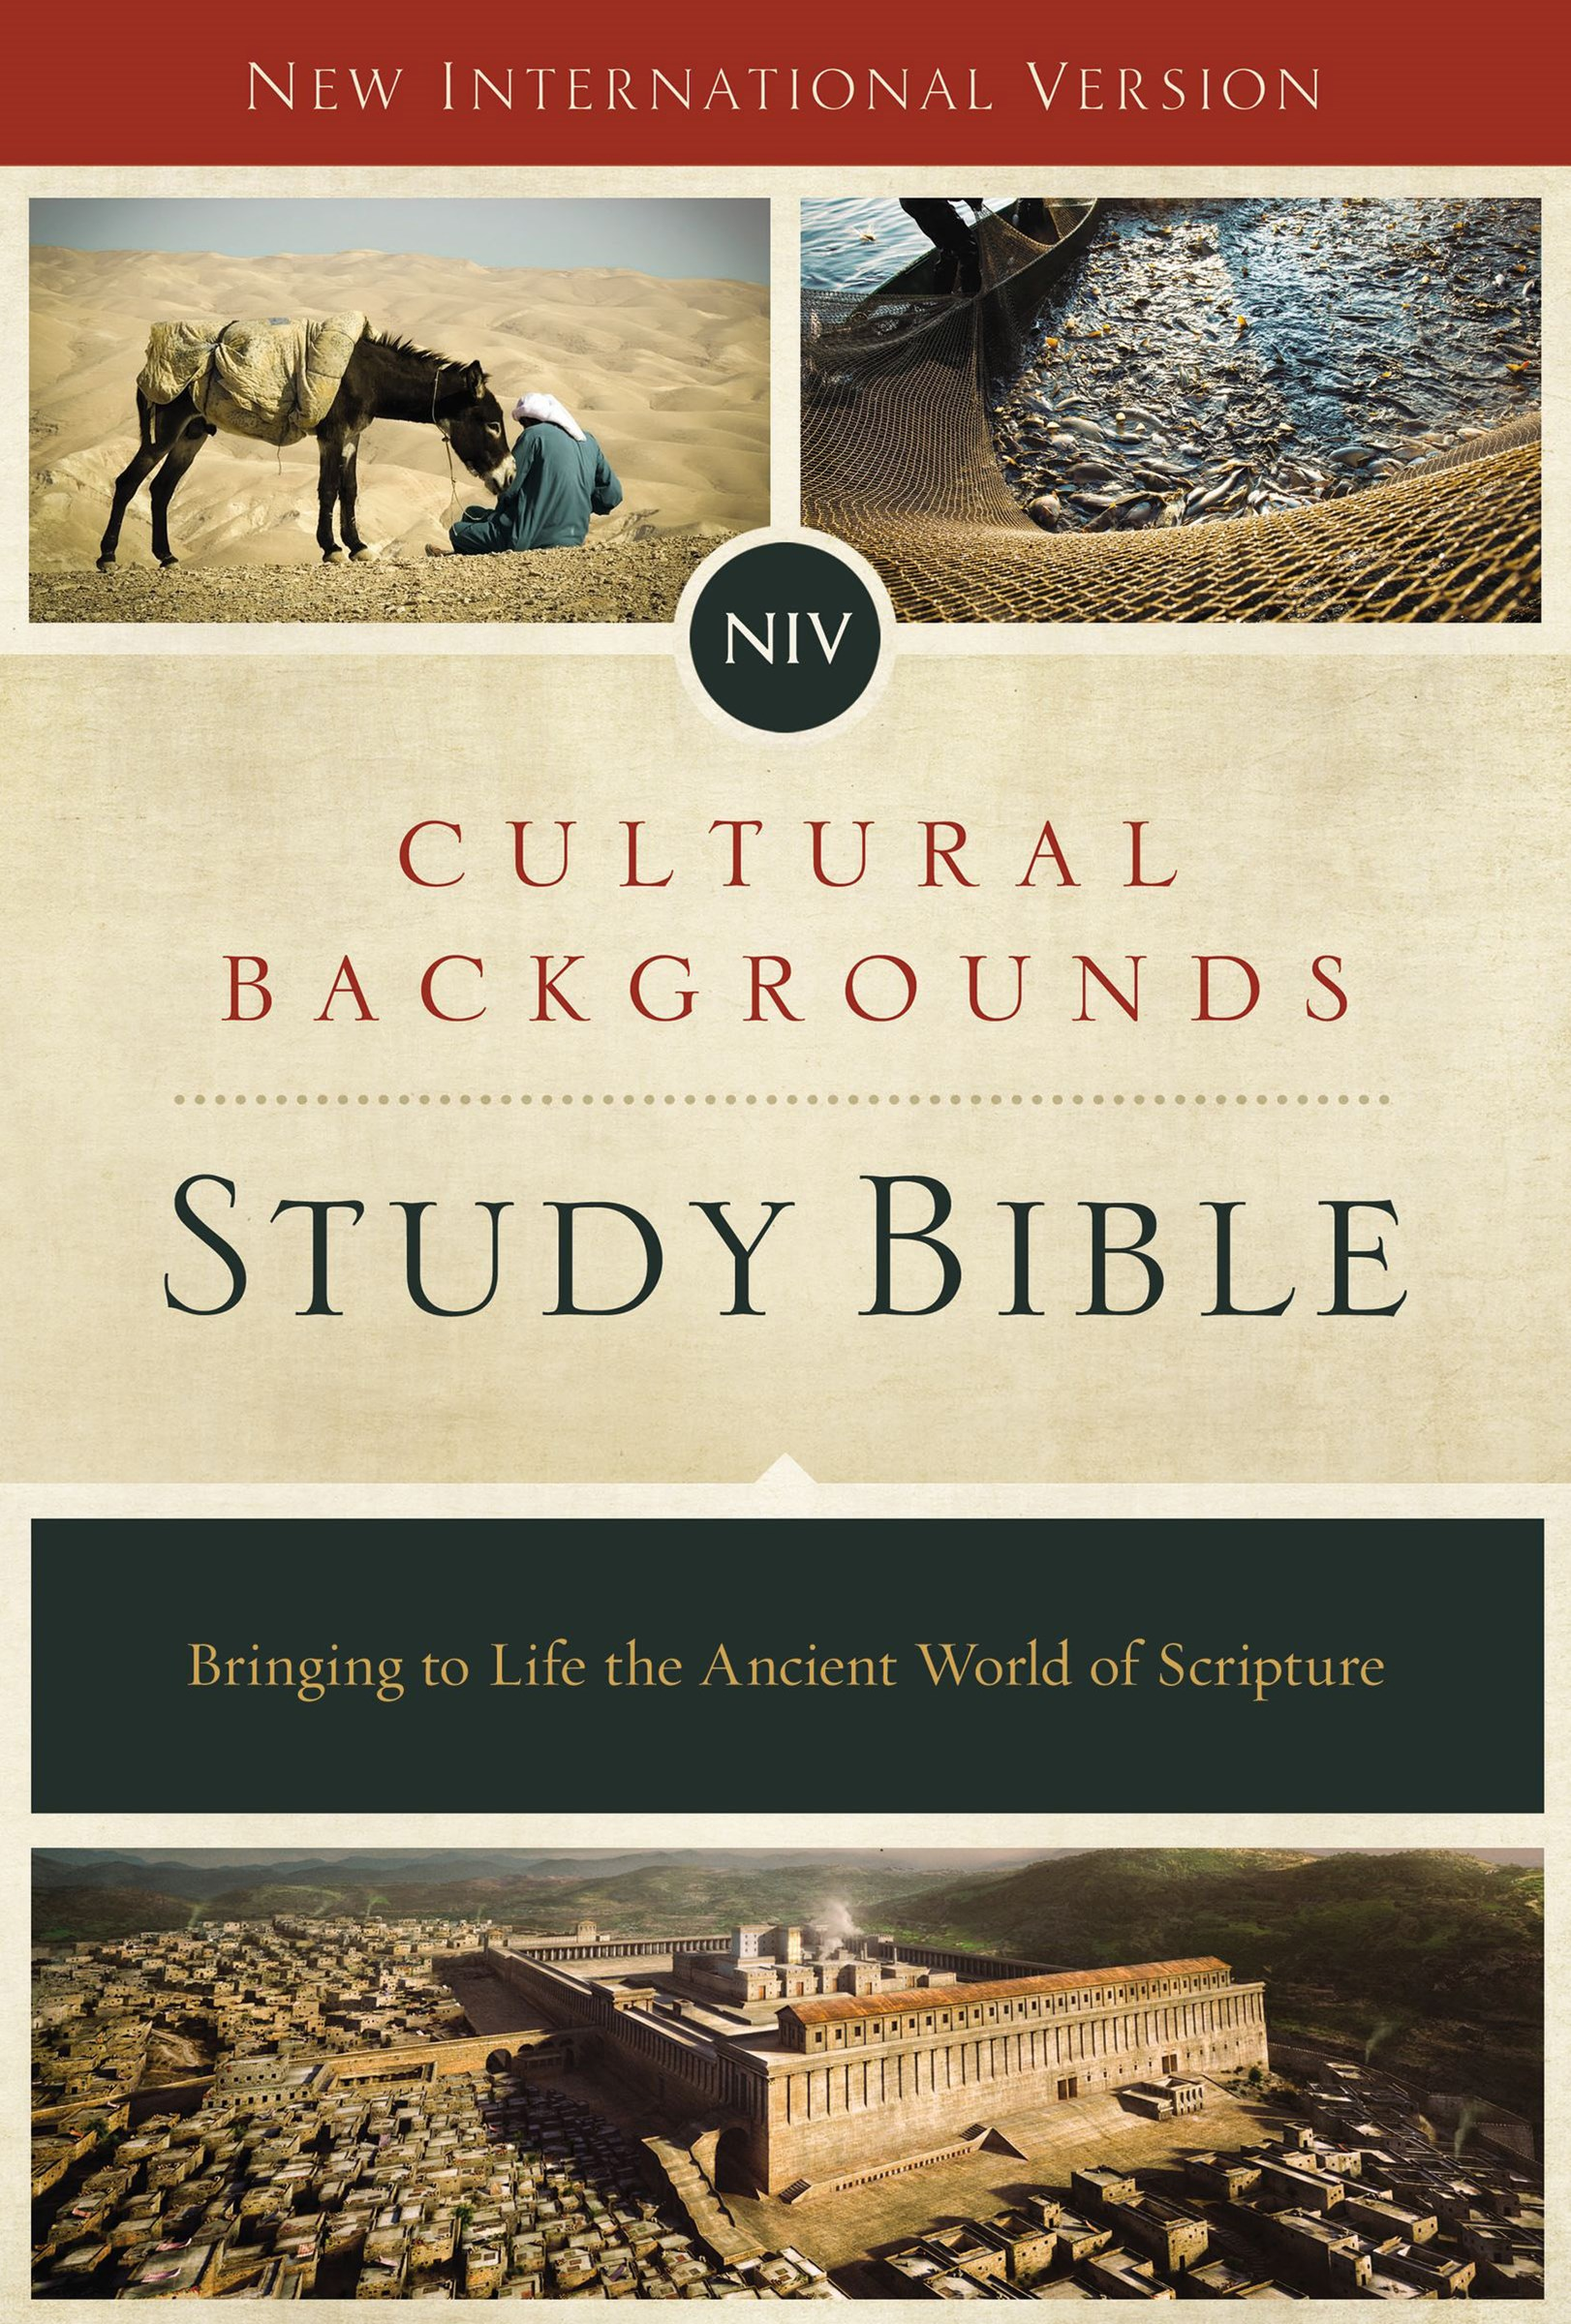 NIV, Cultural Backgrounds Study Bible: Bringing To Life The Ancient World Of Scripture